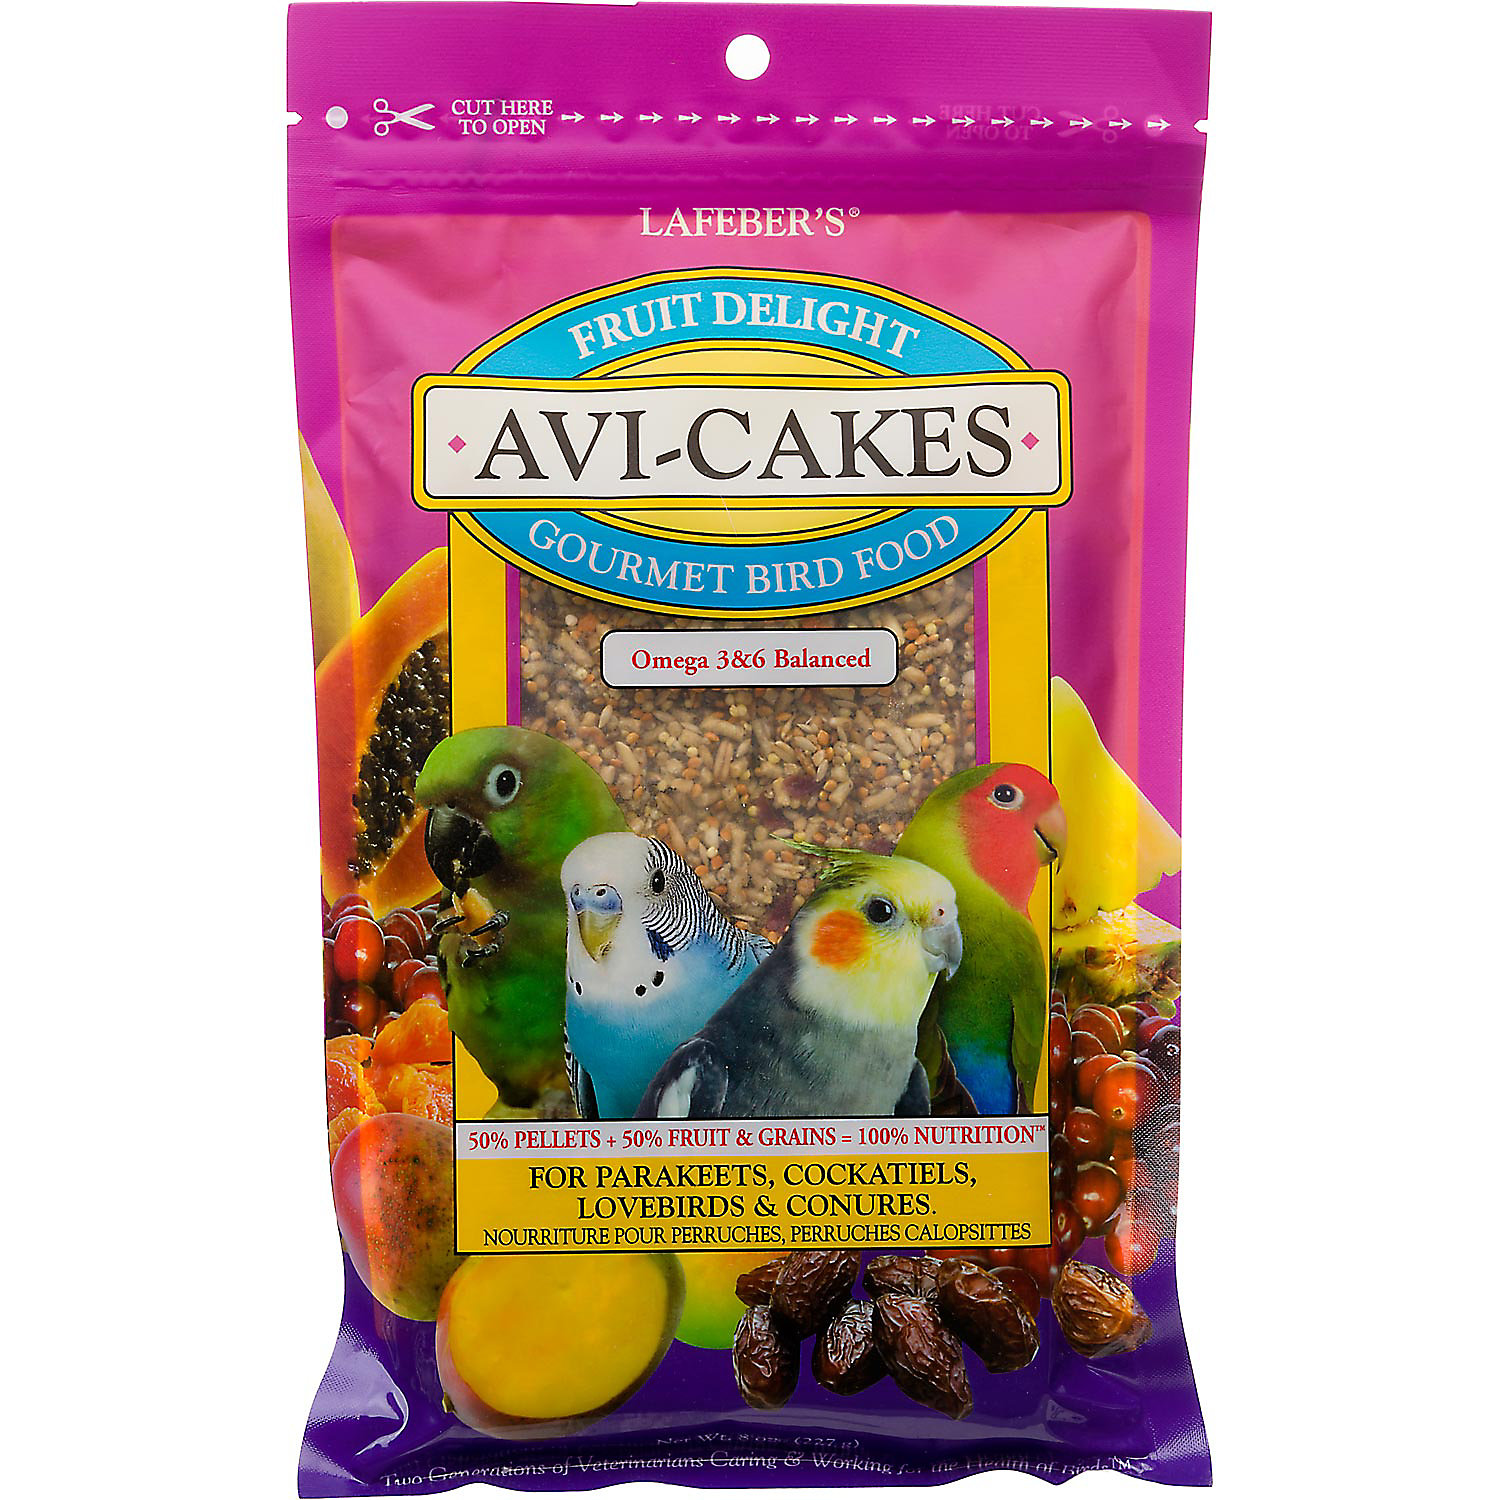 Lafebers Fruit Delight Avi Cakes For Parakeets Cockatiels Lovebirds Conures